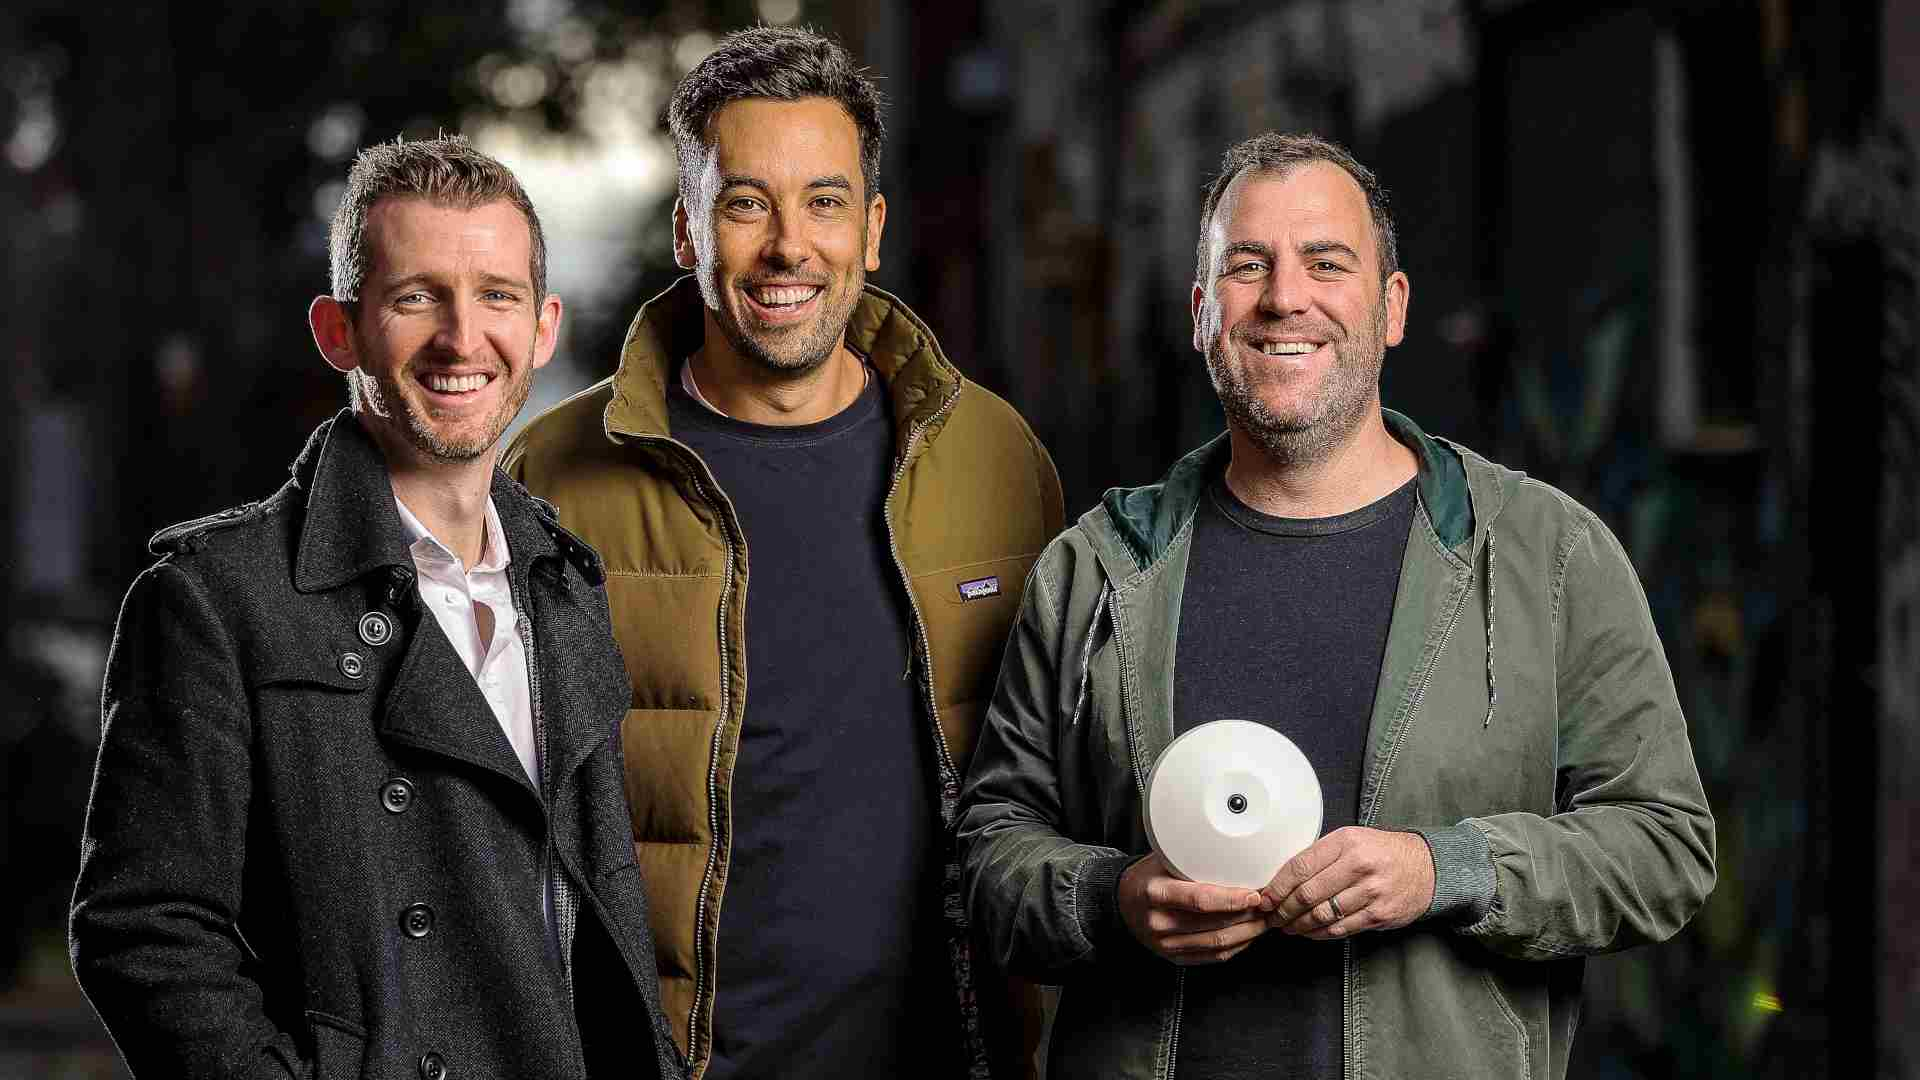 Melbourne startup hones in on future office use